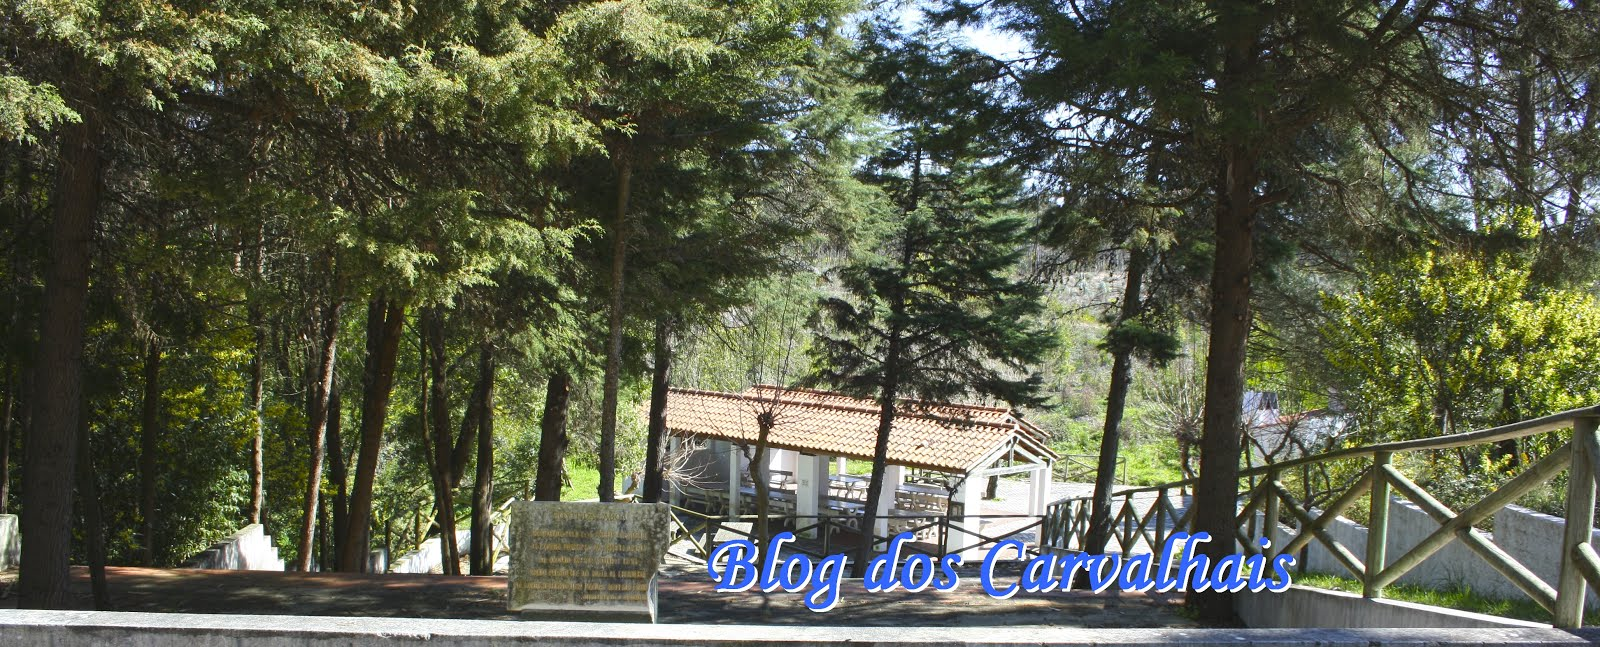 Blog dos Carvalhais